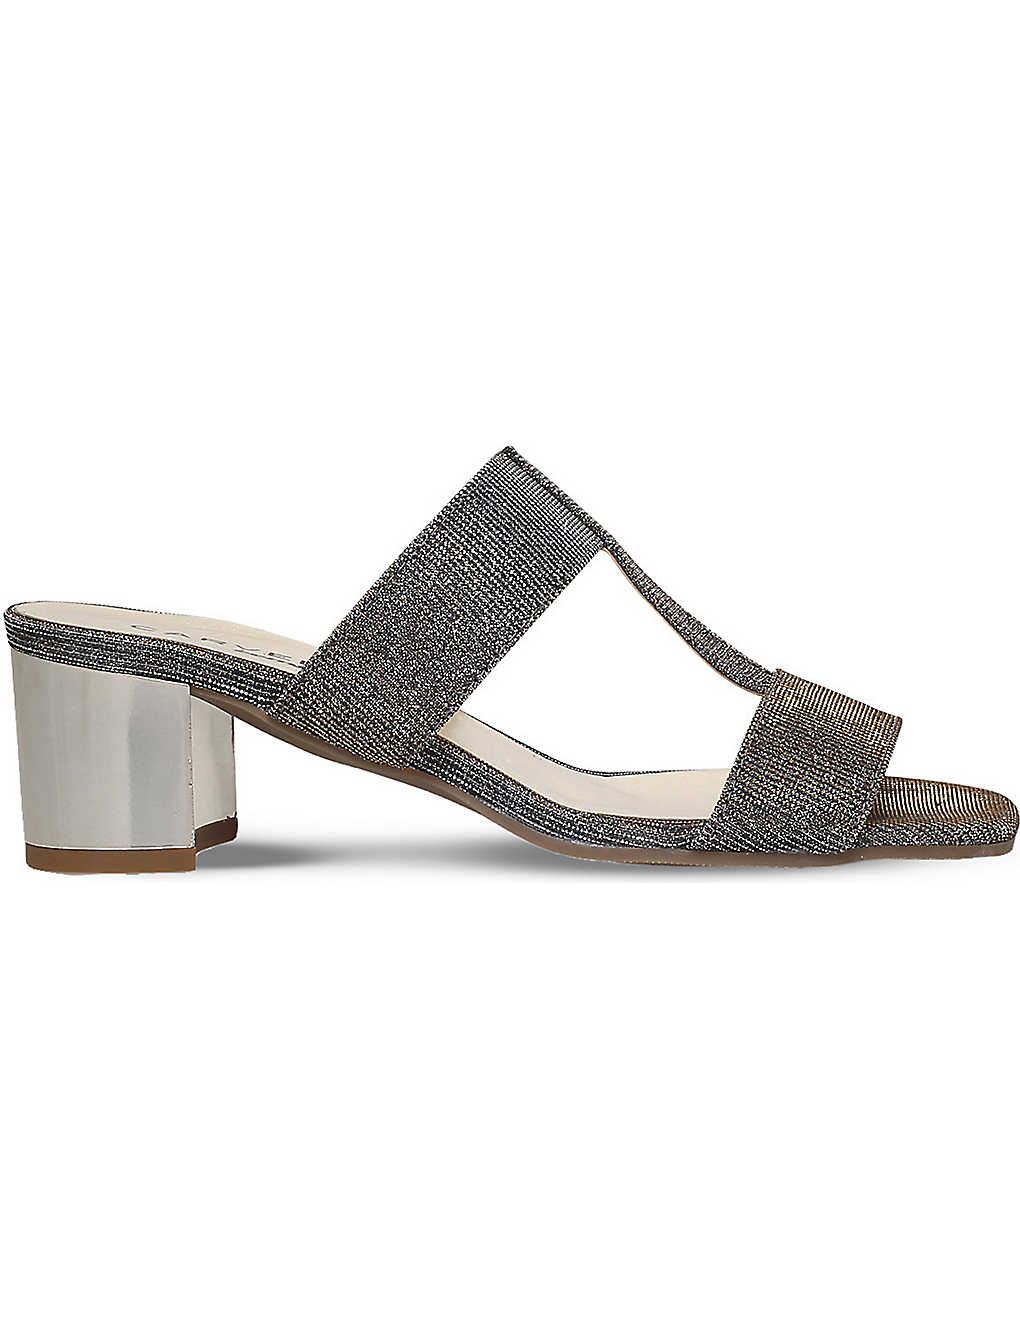 Carvela Comfort Suzy - metallic mid heel sandals Limited Edition Cheap Price Clearance Big Discount A5OkxW